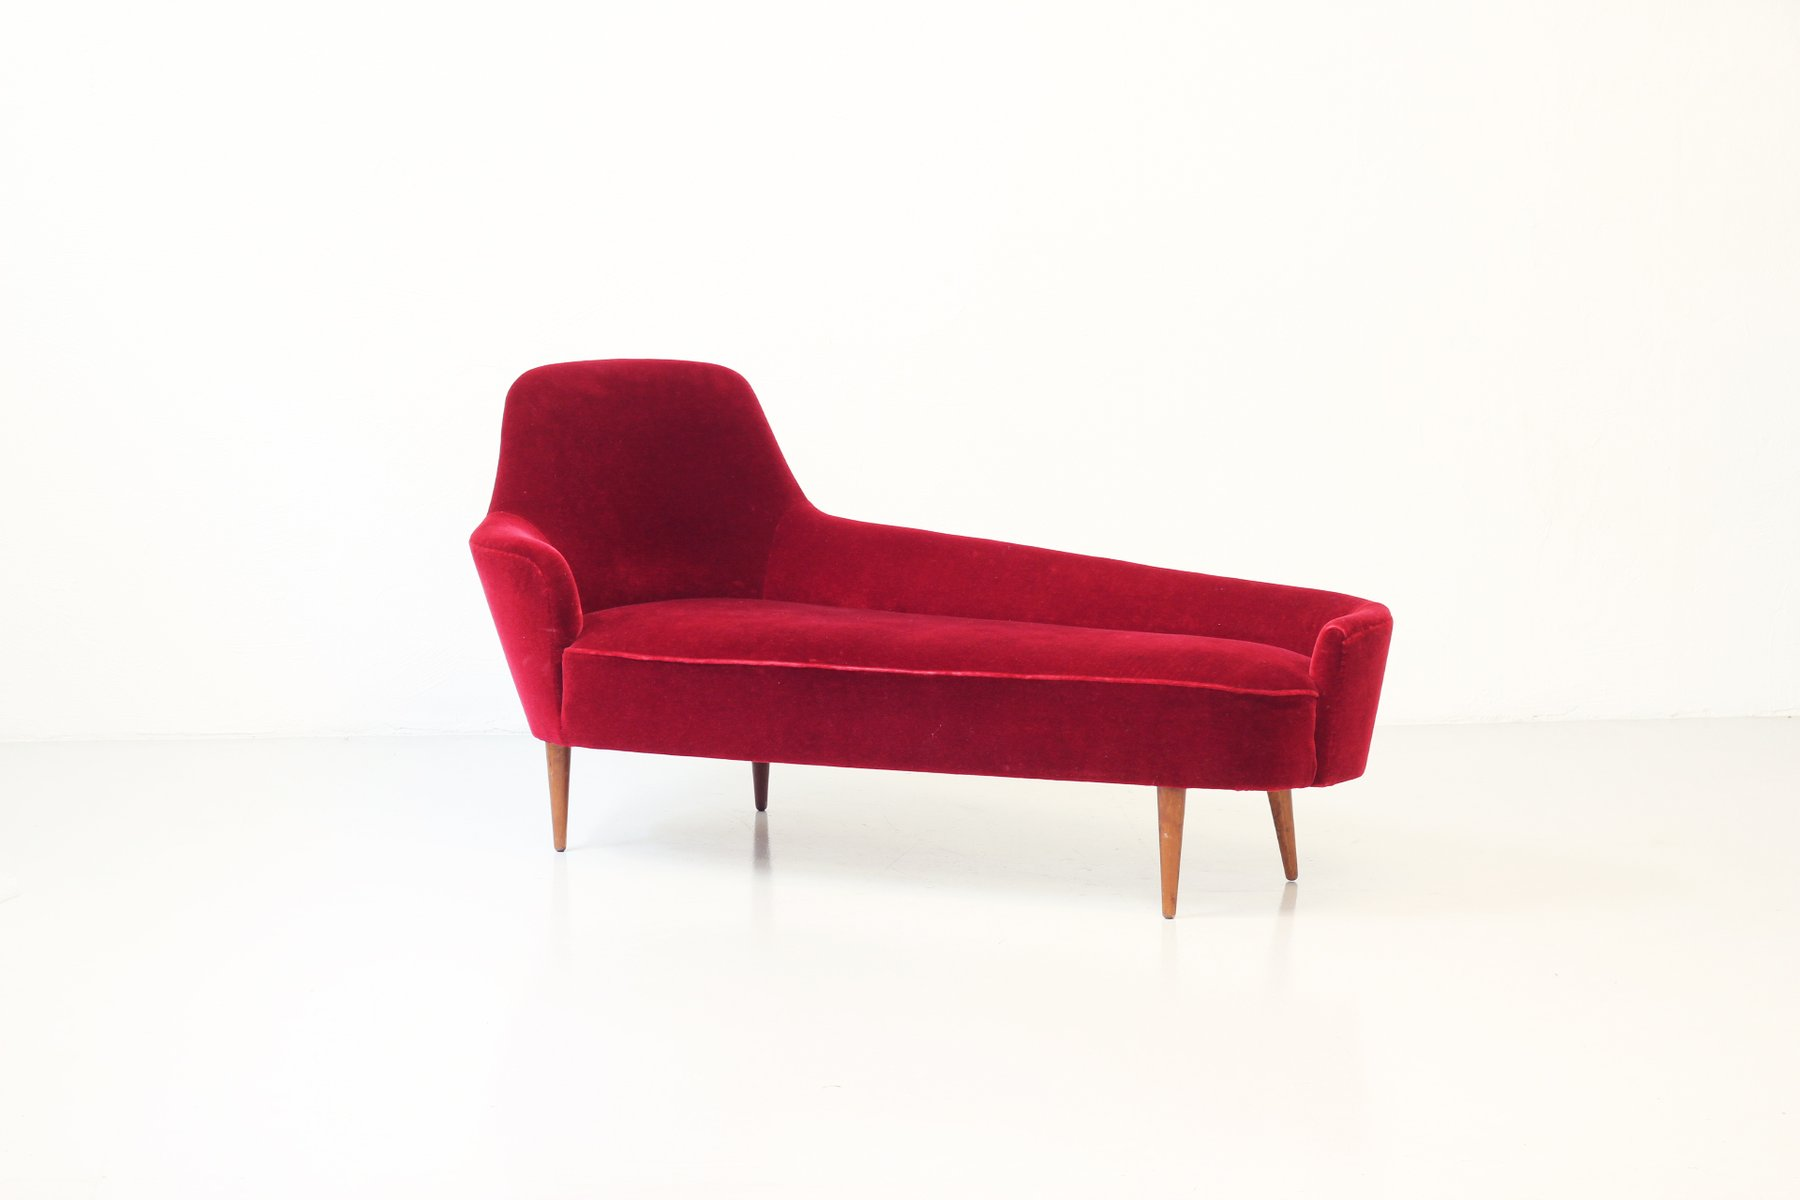 Singoalla chaise lounge by gillis lundgren for ikea 1961 for Chaise longue ikea uk